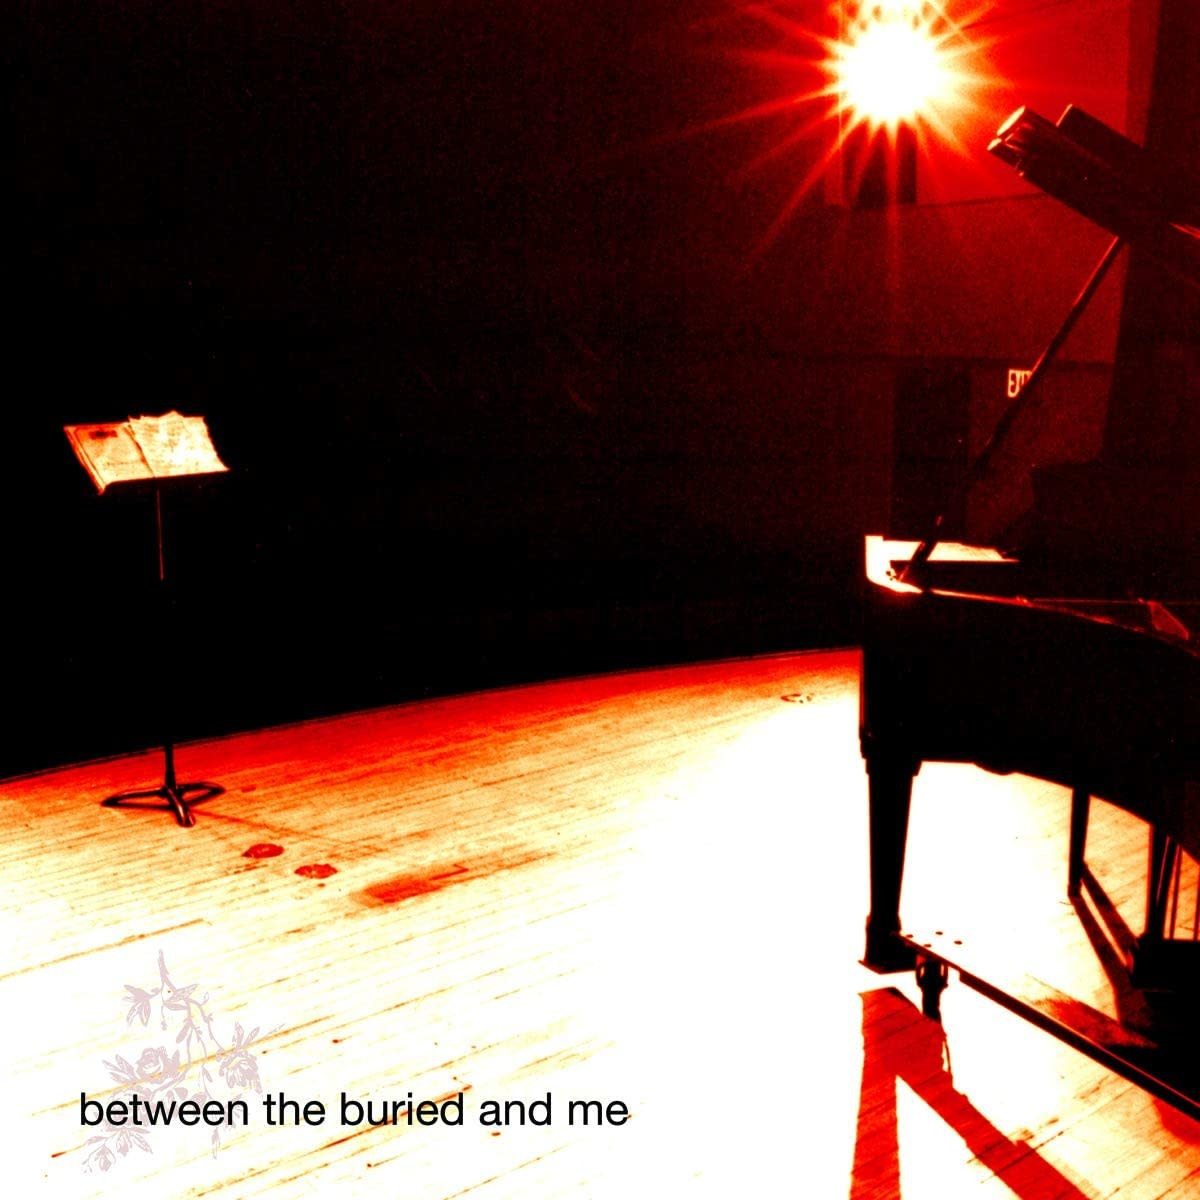 Between The Buried And Me – Between The Buried And Me